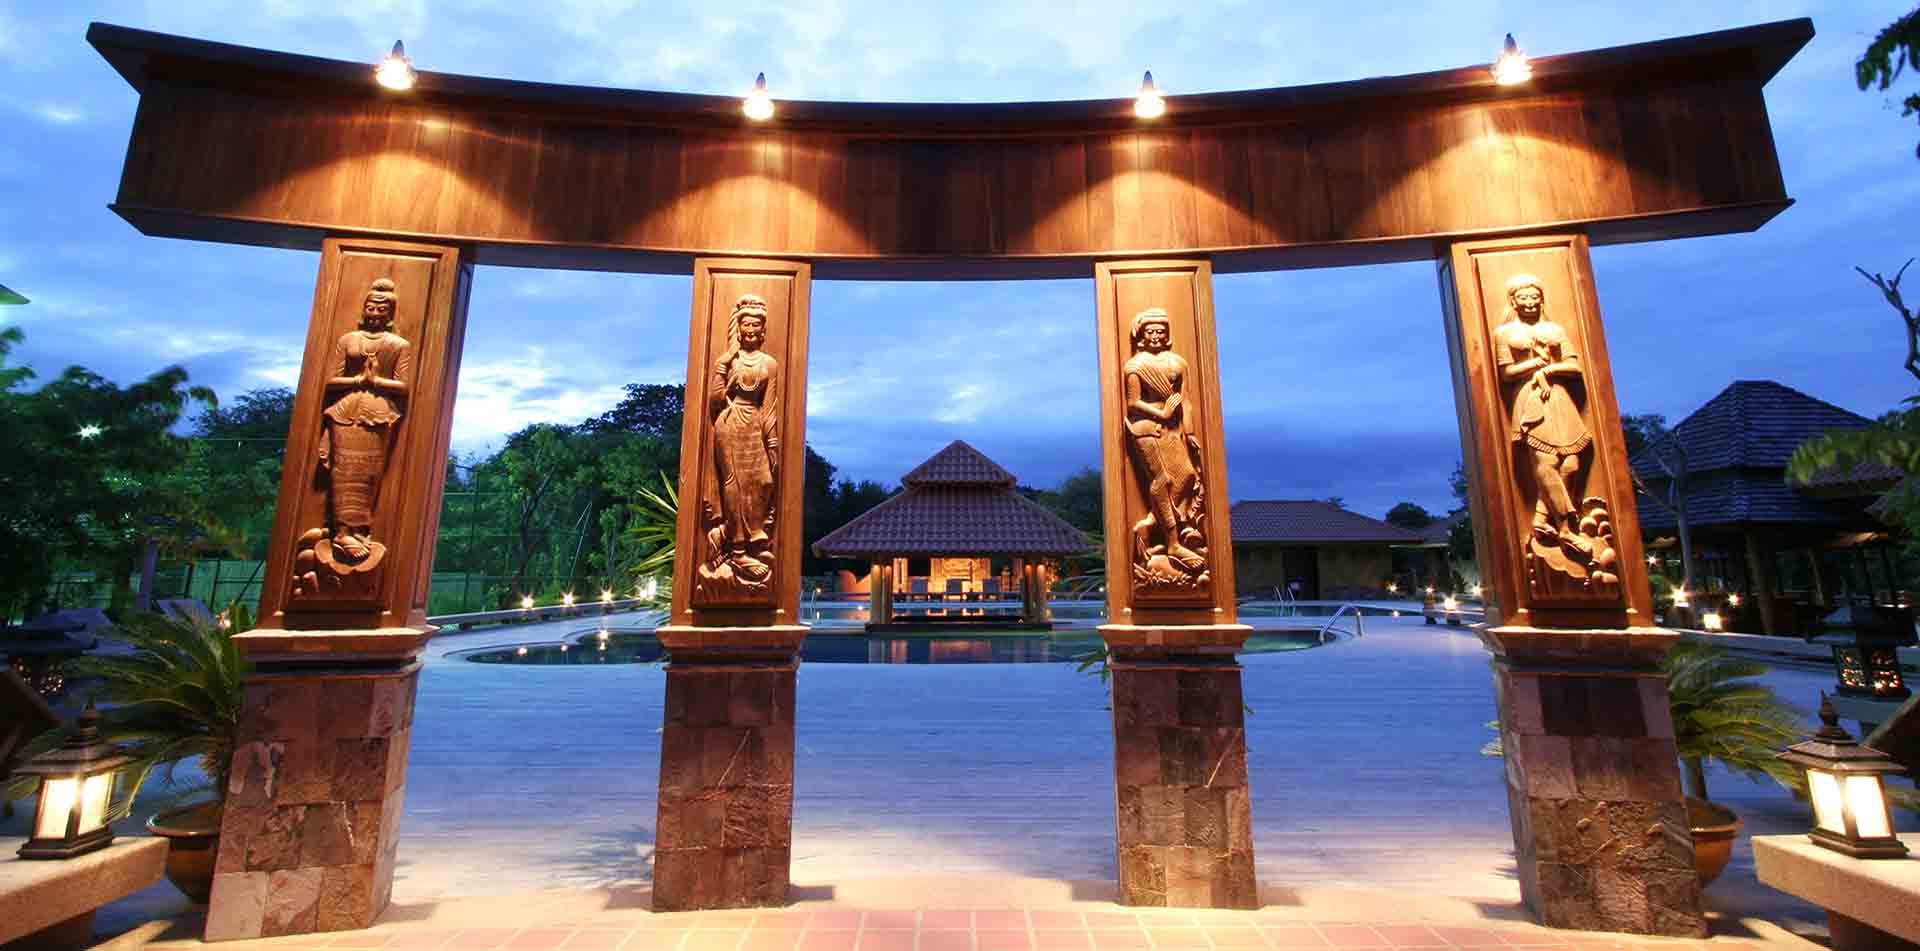 Asia Myanmar Mandalay tropical Rupar Mandalar Resort ornate teak carving Burmese architecture - luxury vacation destinations